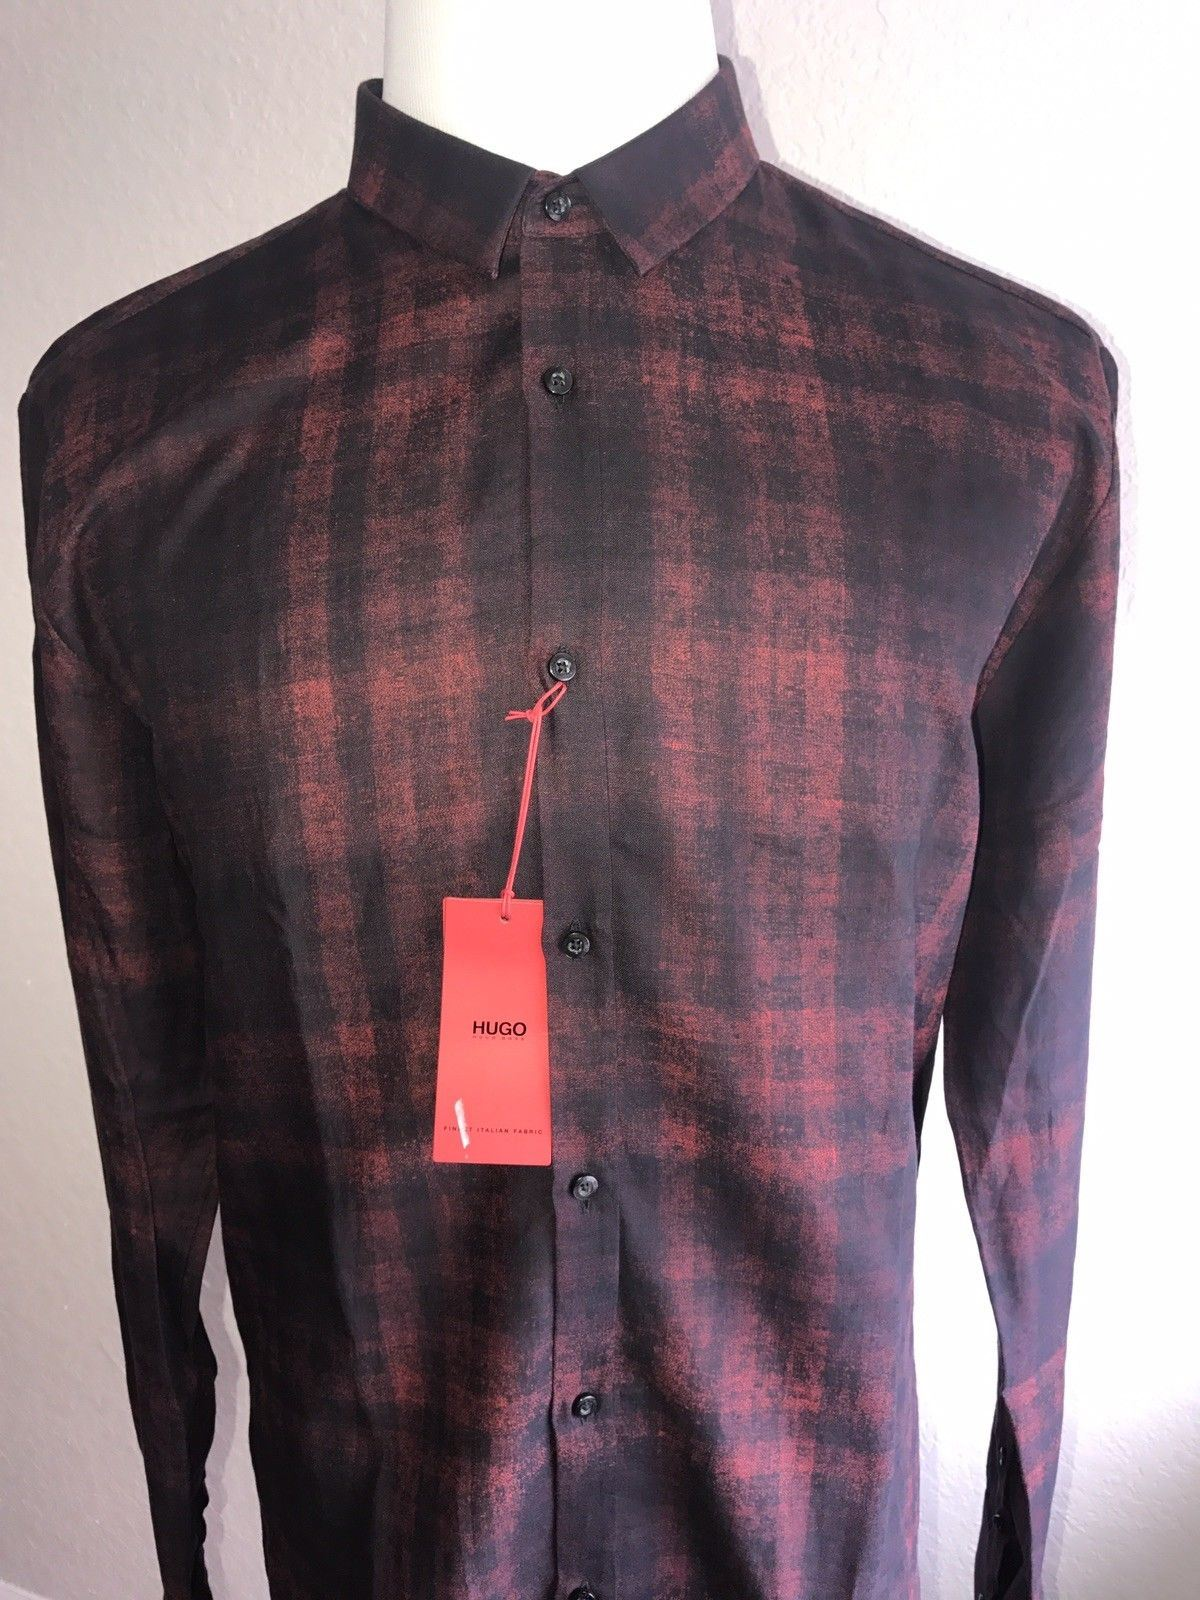 NWT $195 BOSS Hugo Boss Mens Bright Red Slim Fit Dress Shirt Size M HM-005